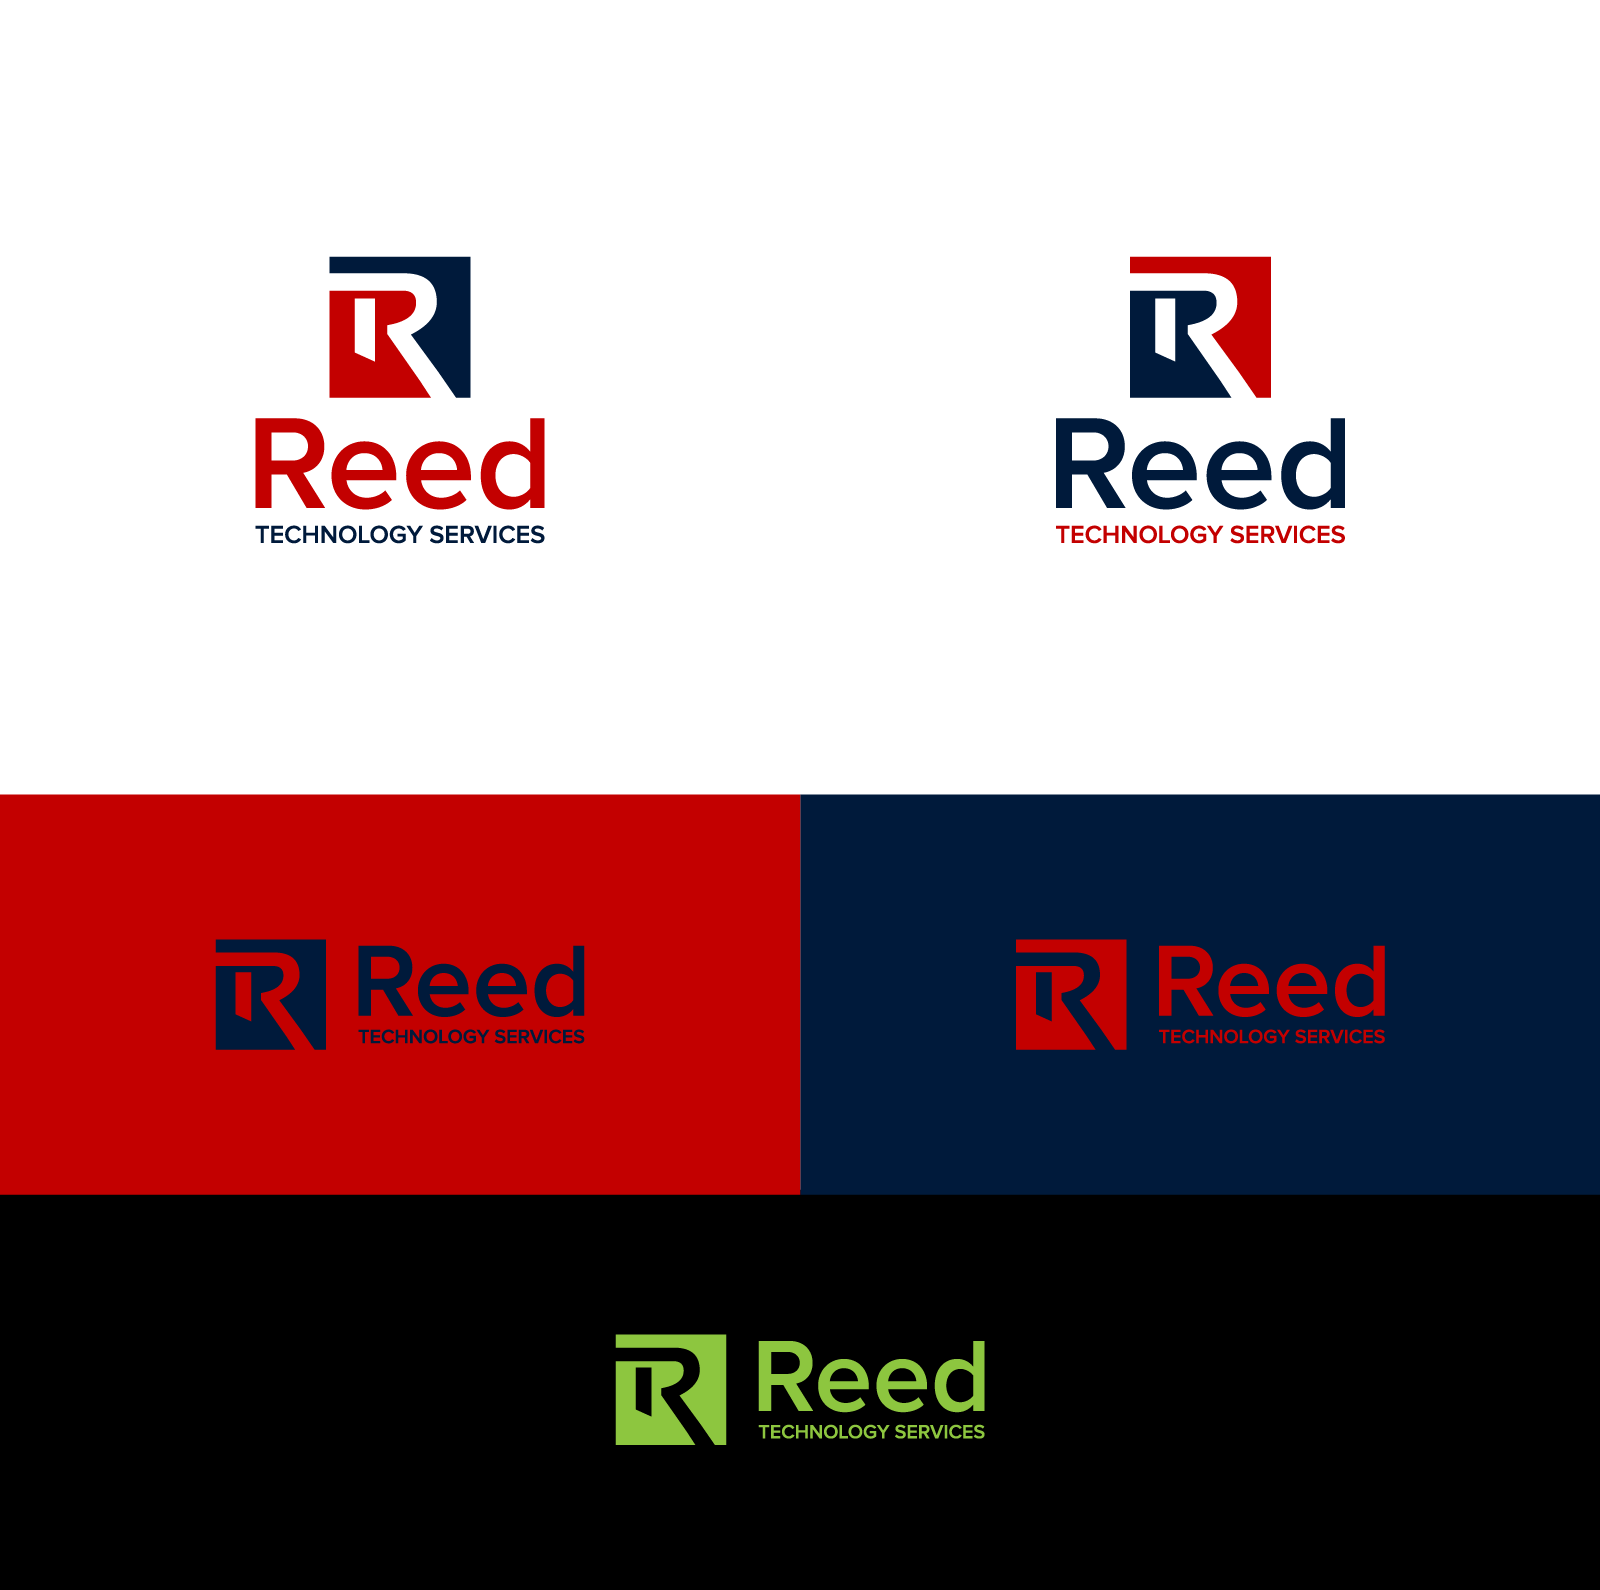 Let's build a long-term engagement starting with your awesome logo design!